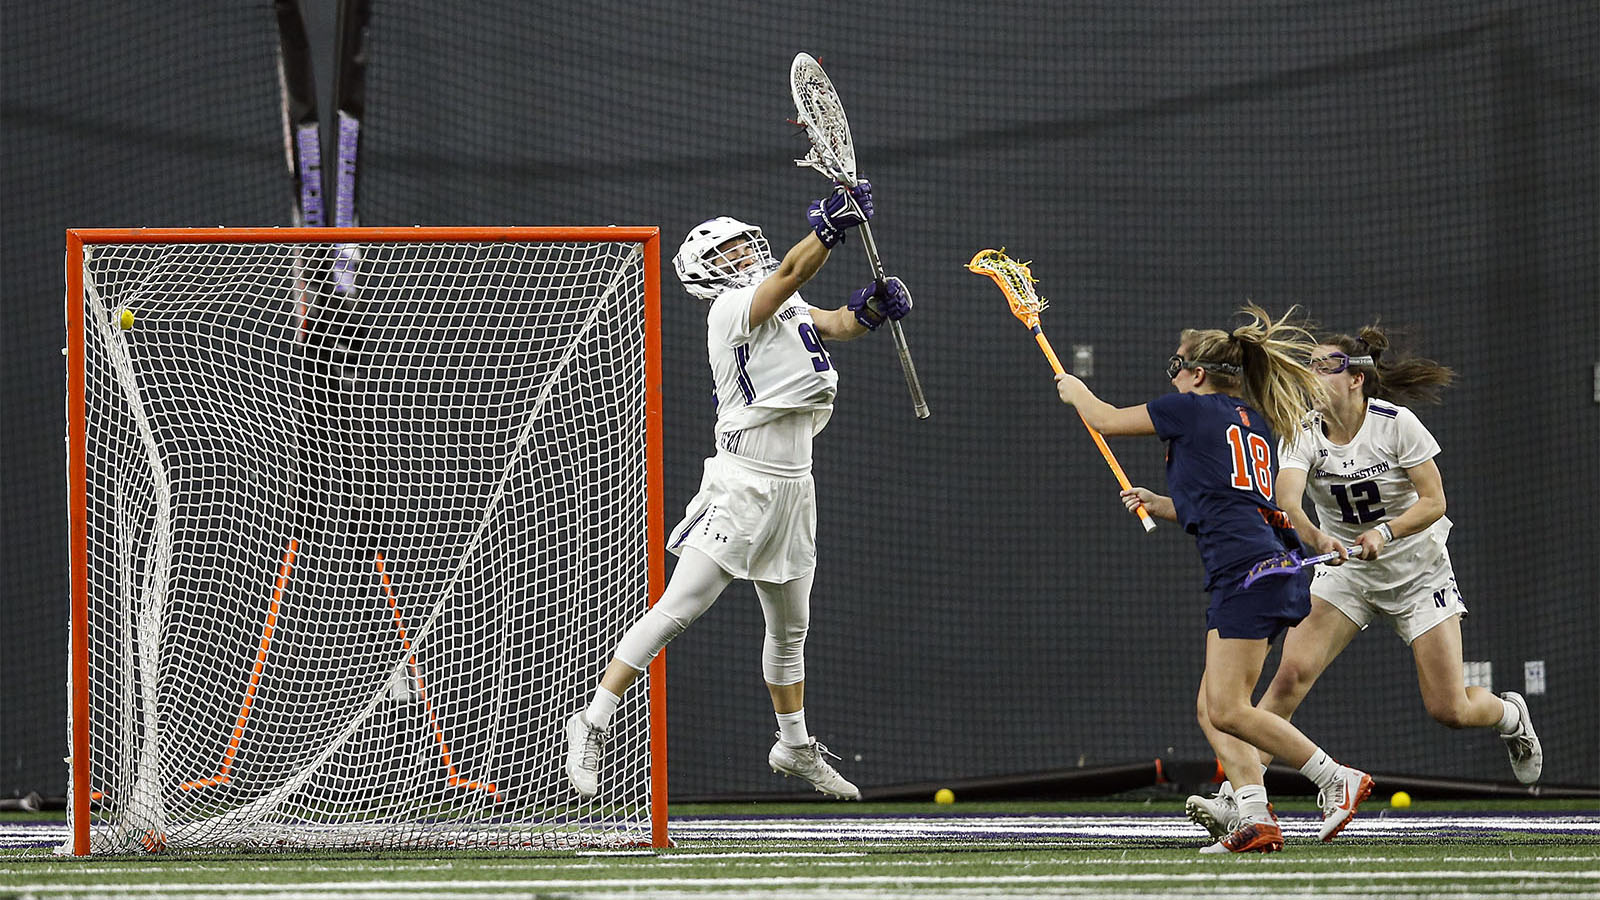 Meaghan Tyrrell scored a career-high five goals at Northwestern.